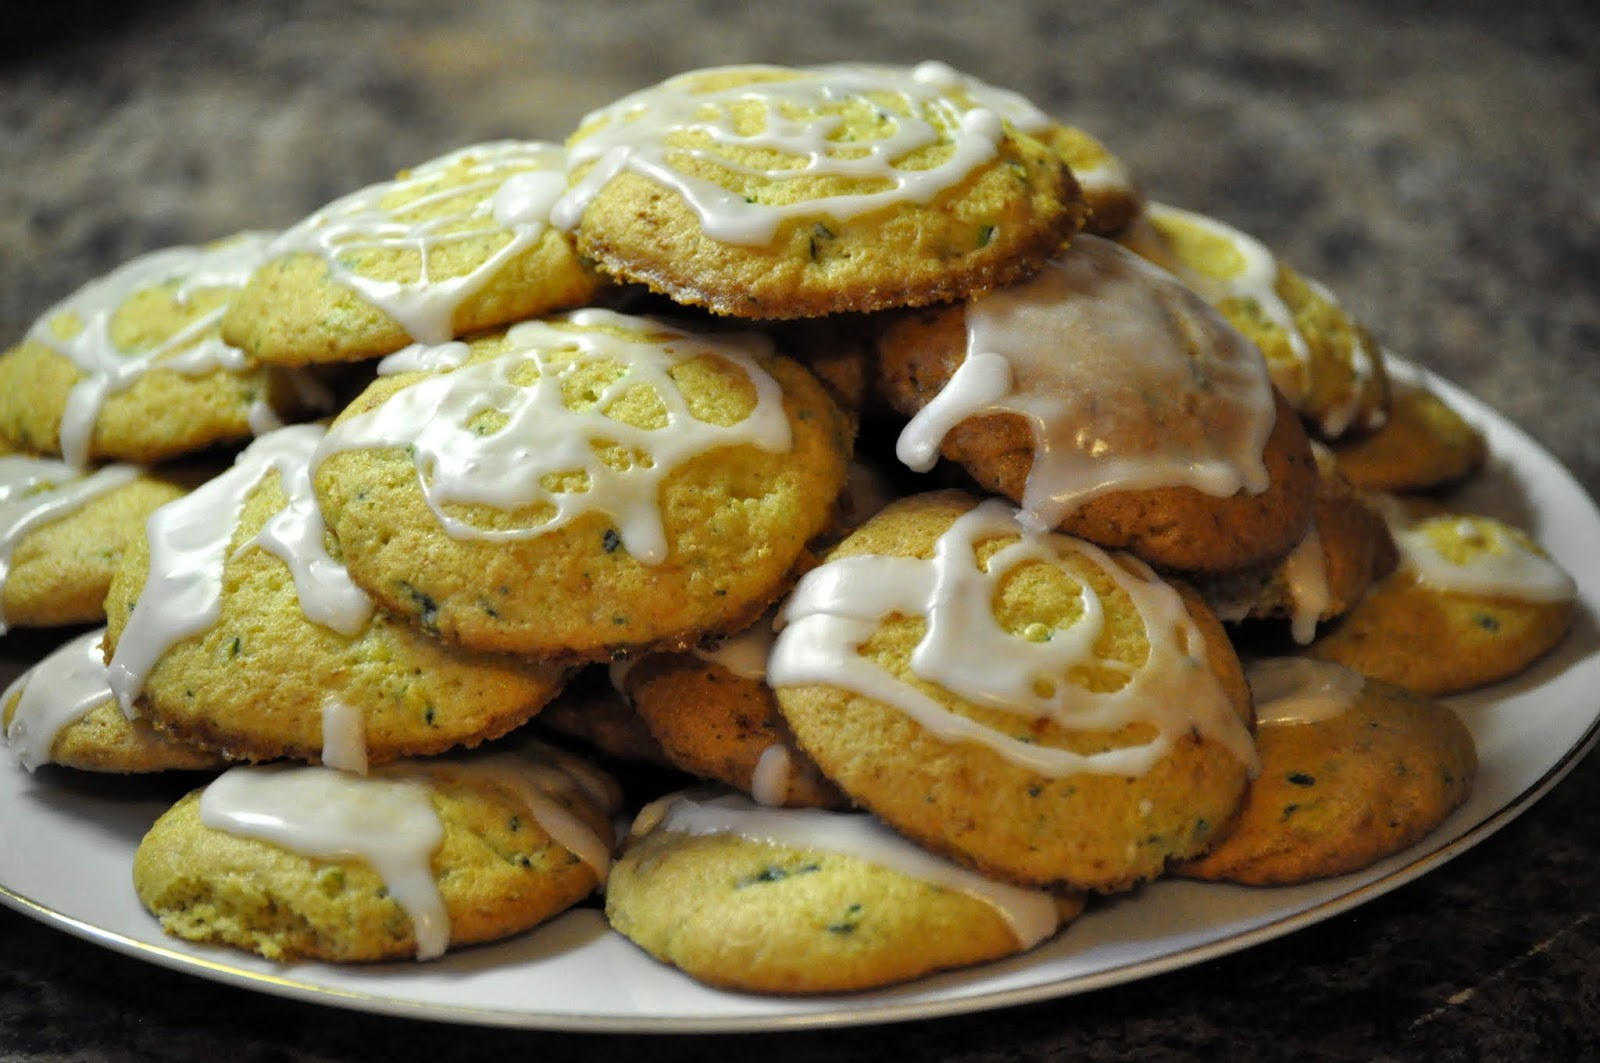 ... Farm CSA: Recipe Of The Week: Zucchini Cookies With Lemon Glaze